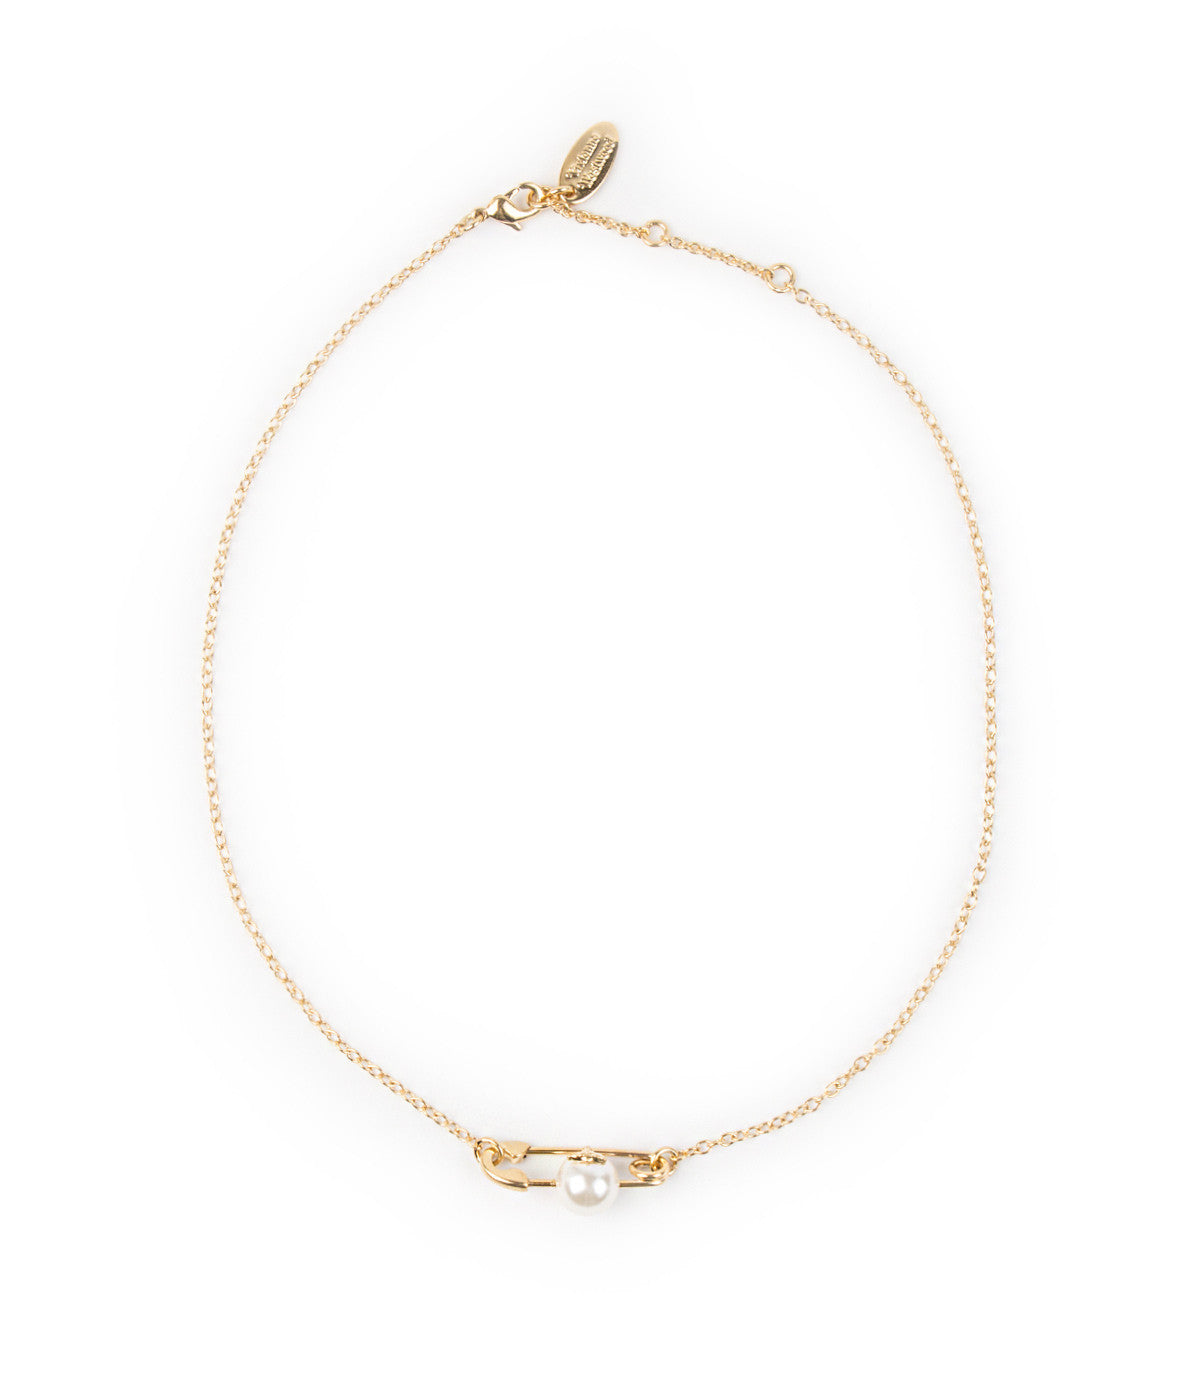 Yellow Gold Safety Pin Chocker Necklace